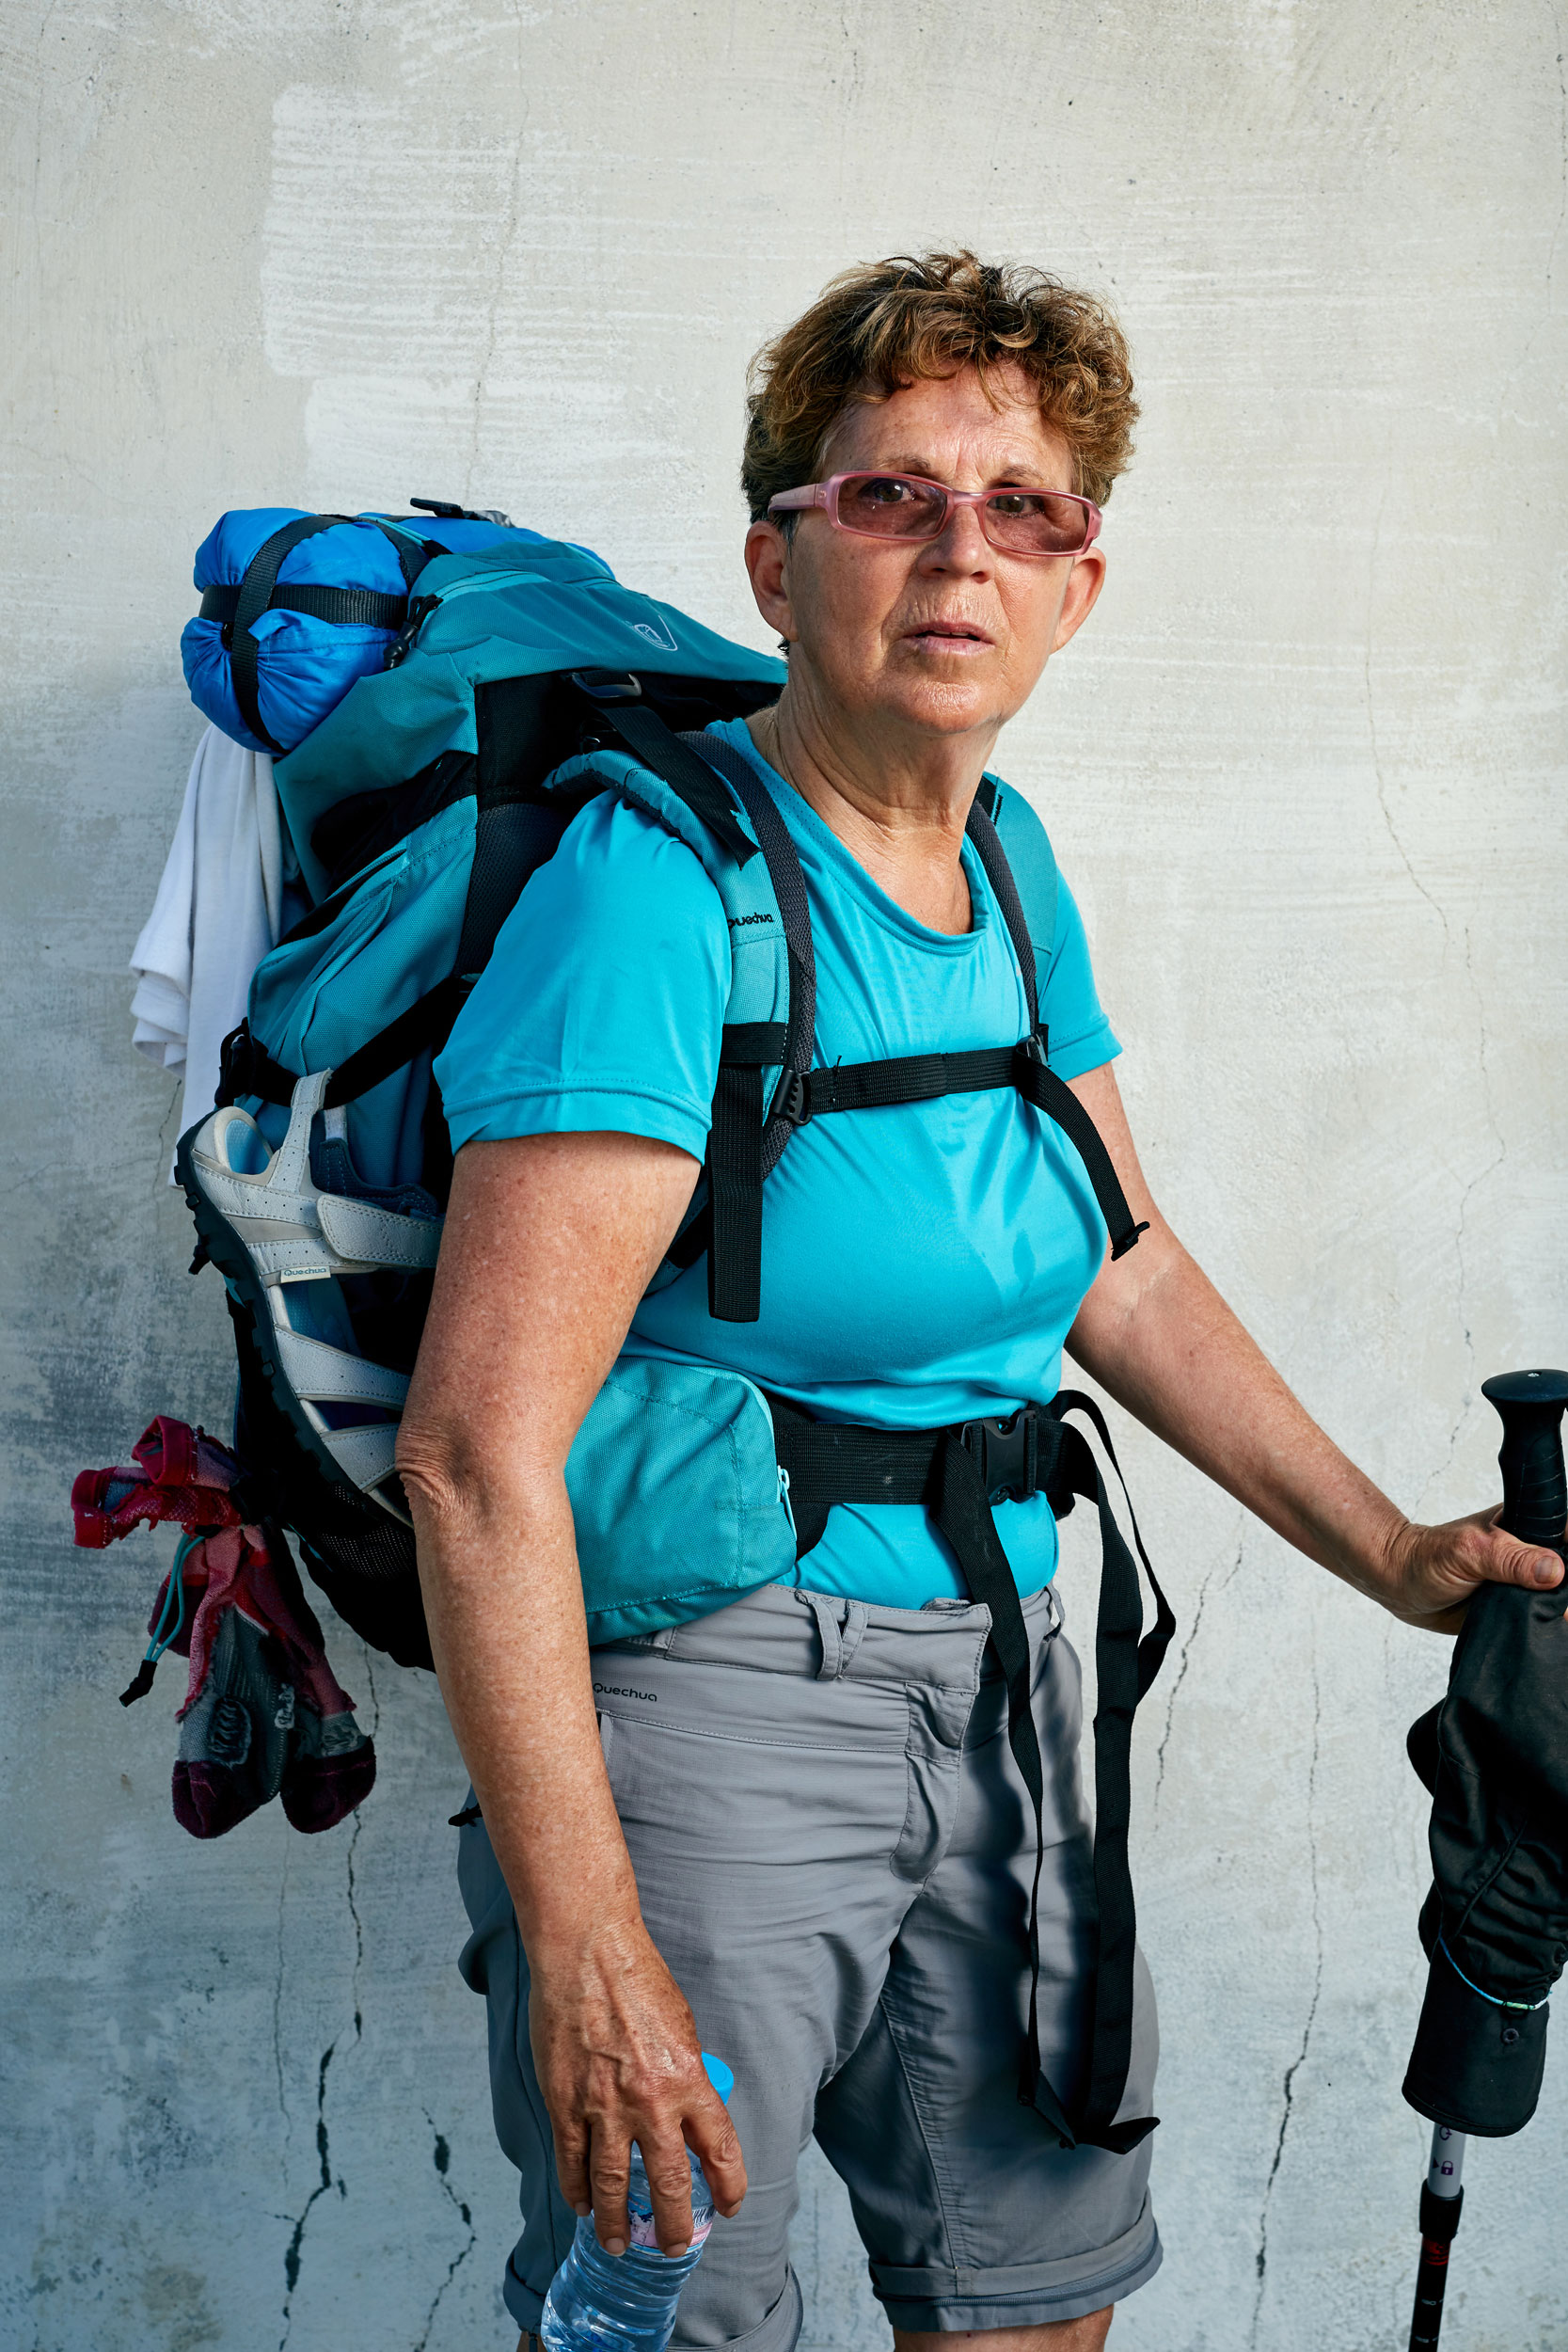 Camino pilgrim lady with a laden rucksack, water bottle and walking pole by documentary portrait photographer Duncan Elliott